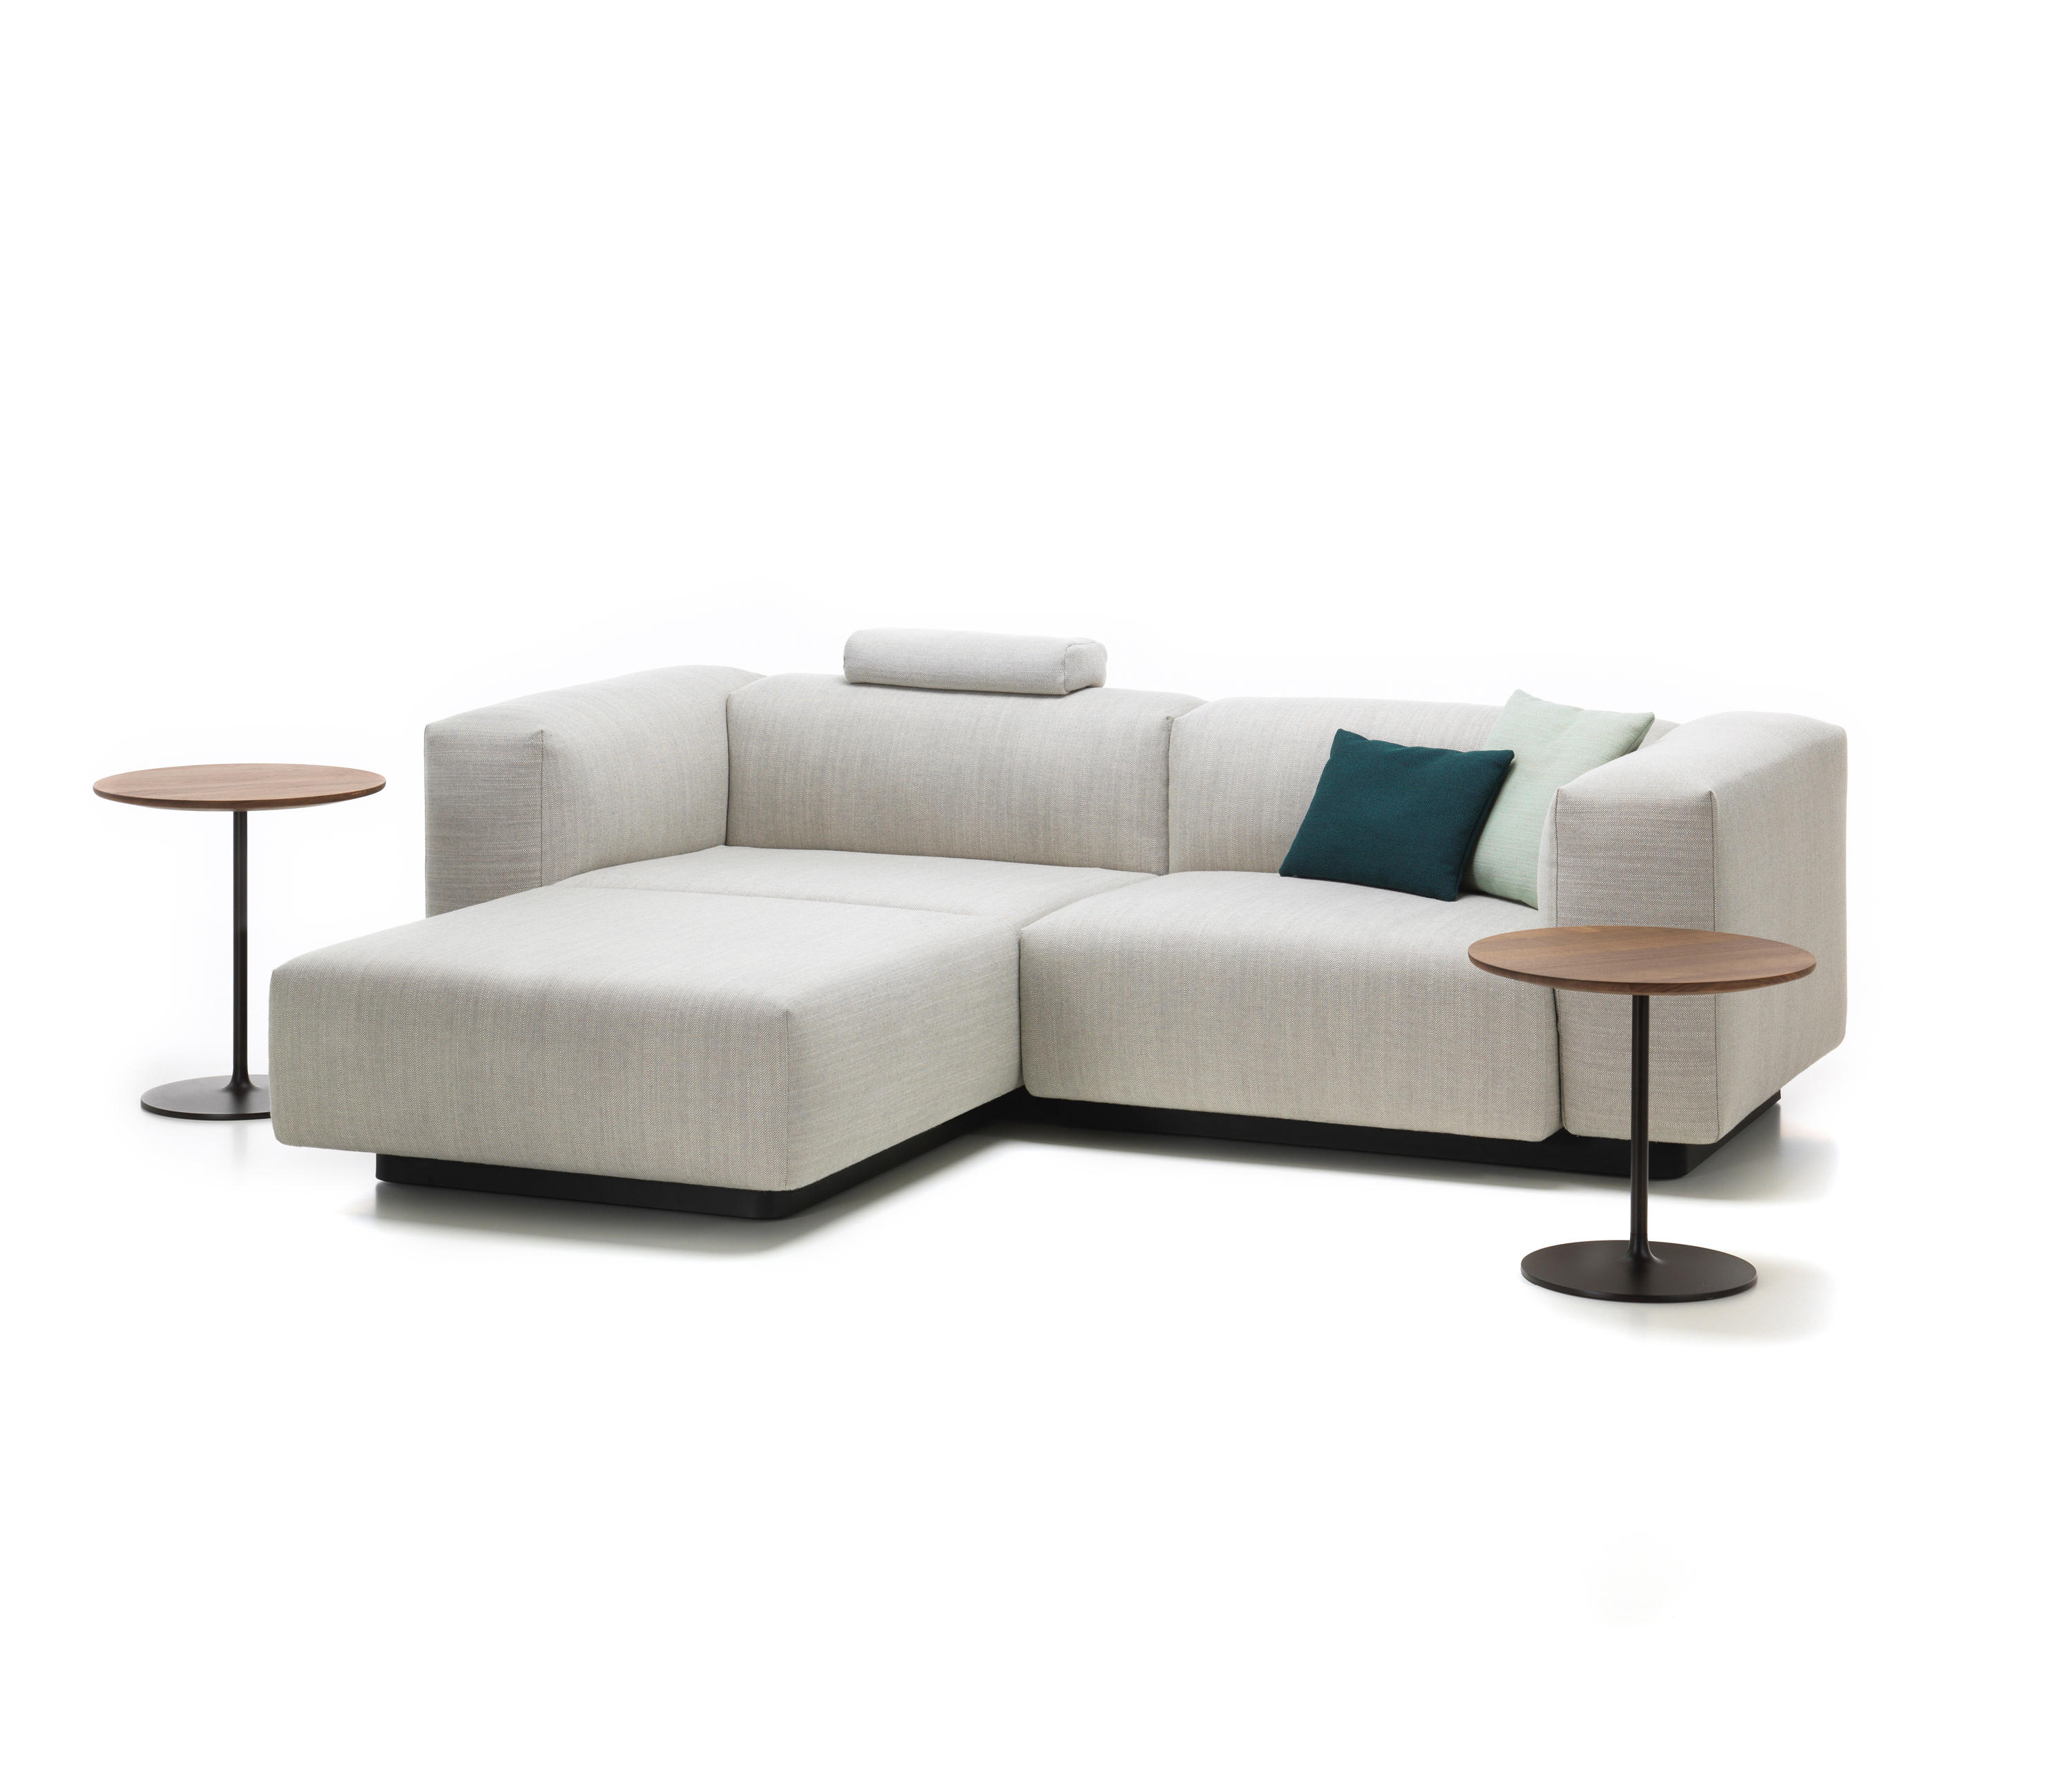 soft modular sofa 2 seater chaise longue sofas from vitra architonic. Black Bedroom Furniture Sets. Home Design Ideas